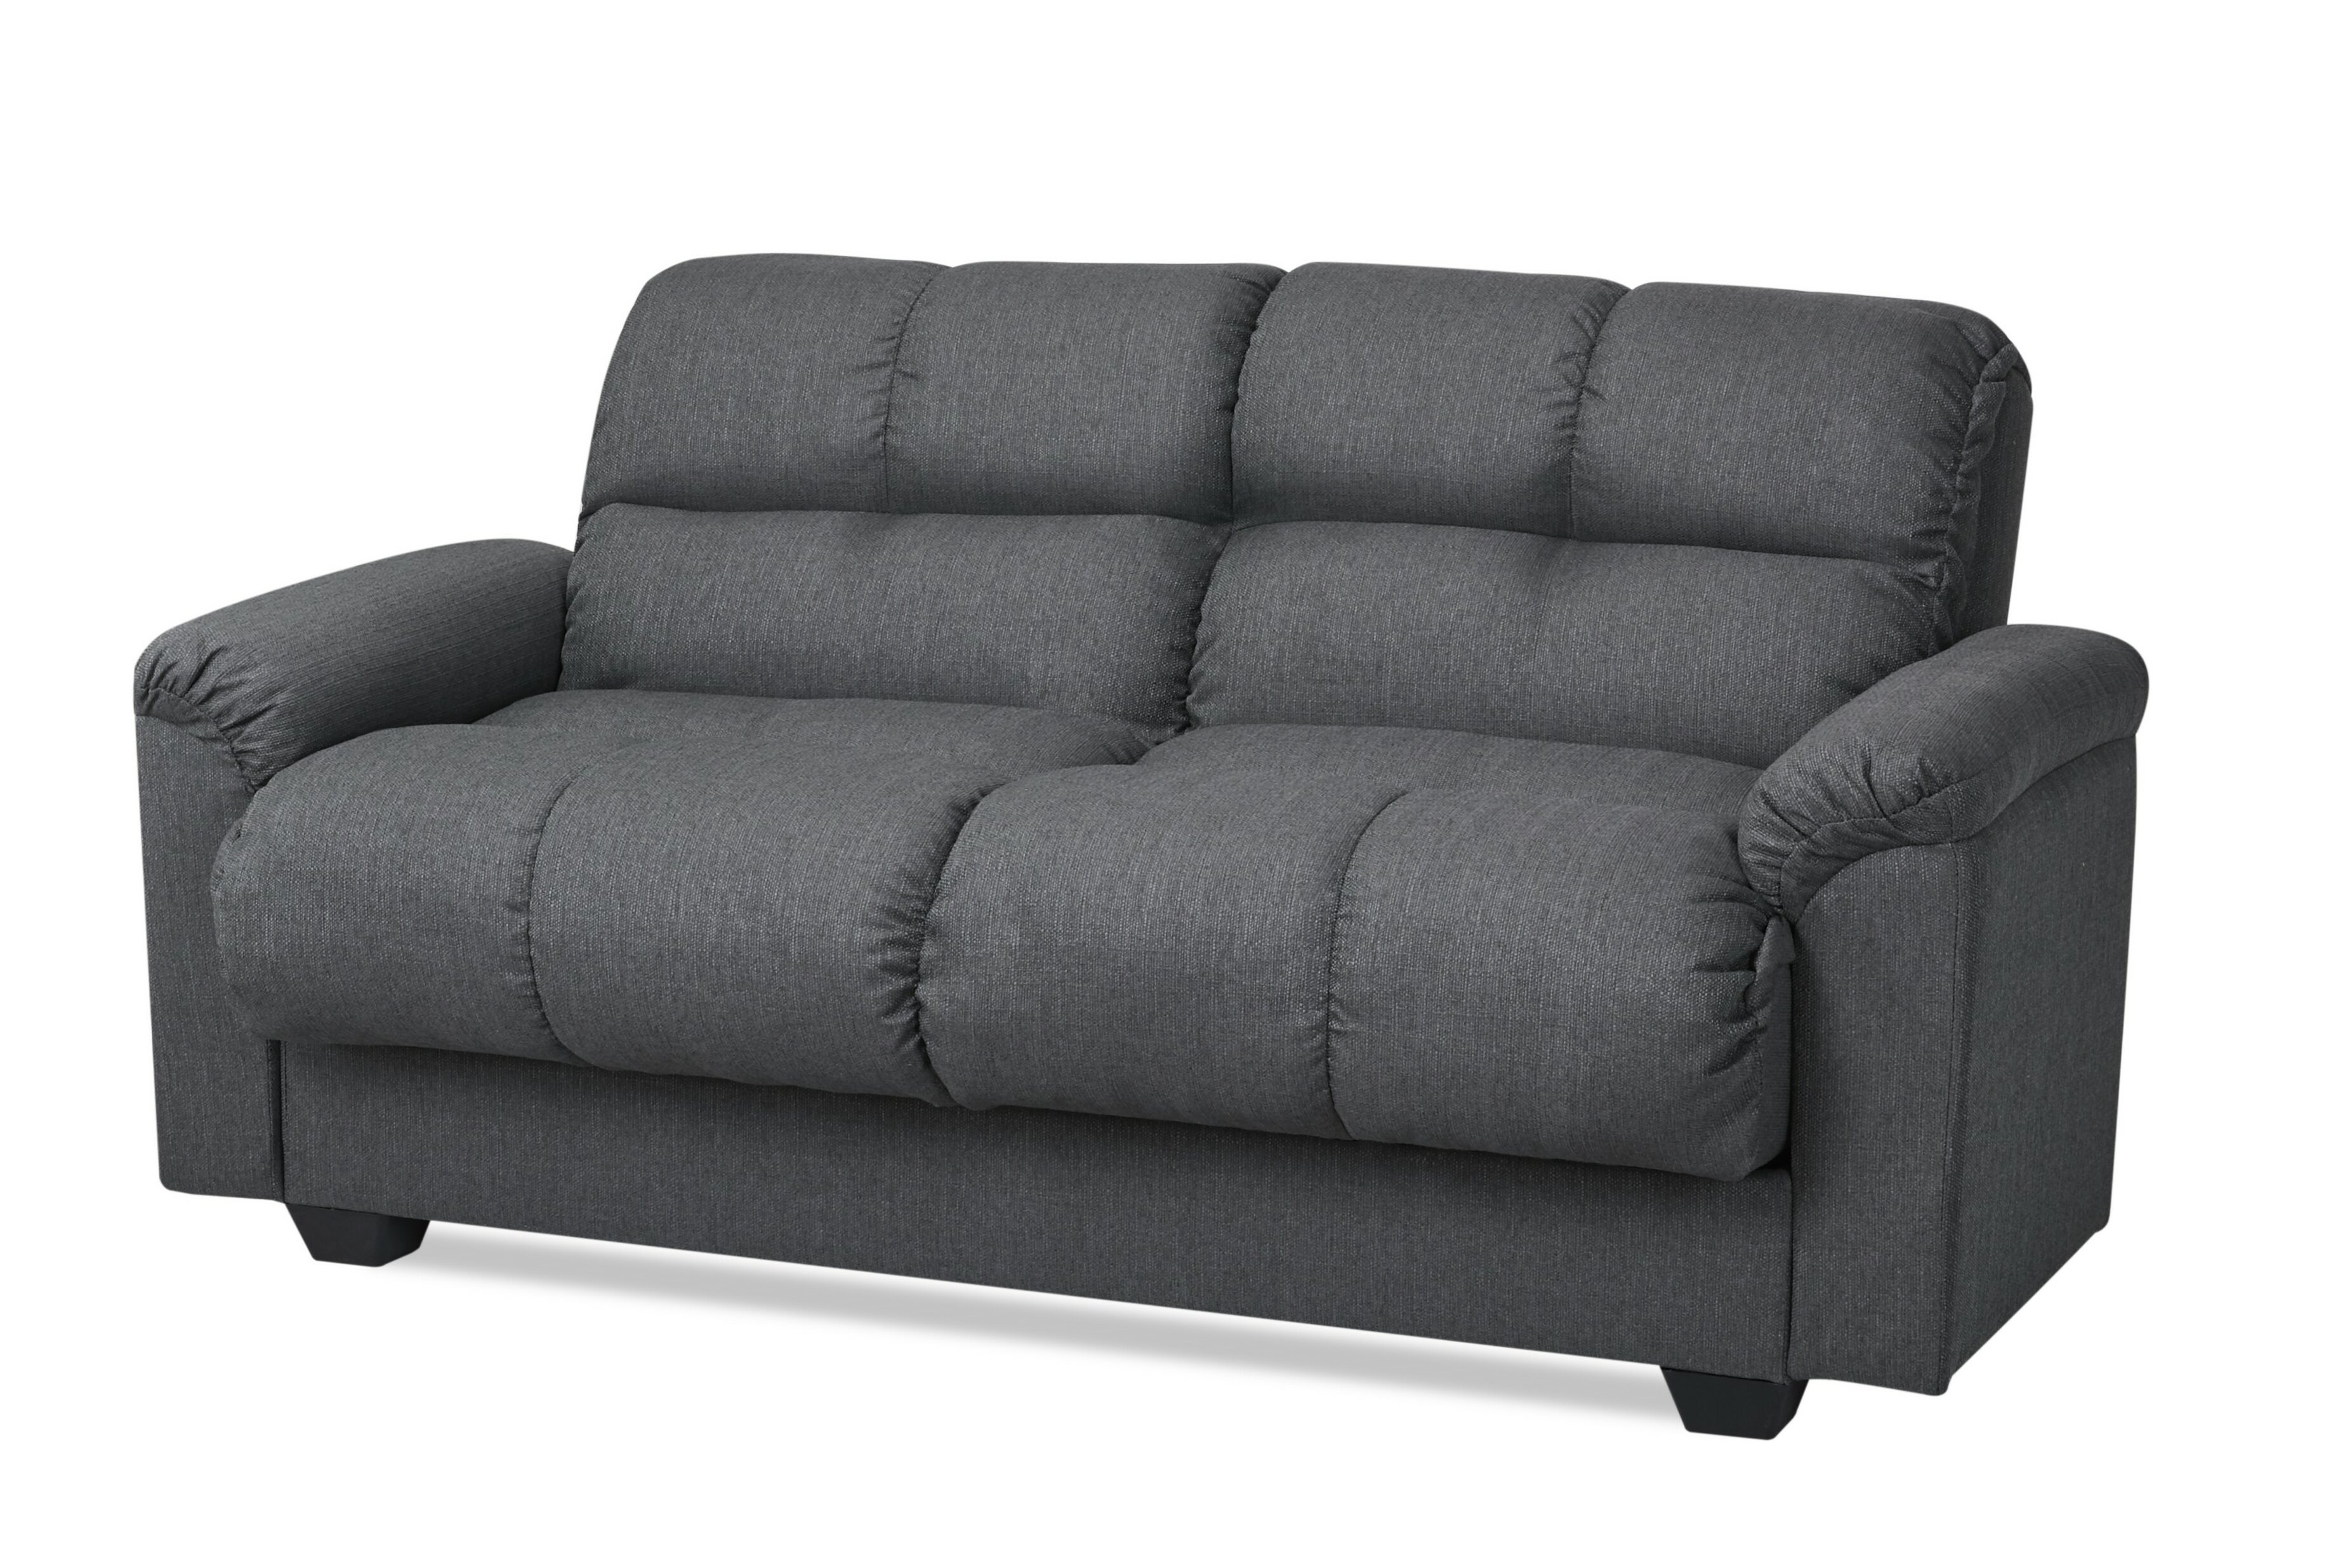 Leader Lifestyle Cate 2 Seater Clic Clac Sofa Bed & Reviews ...